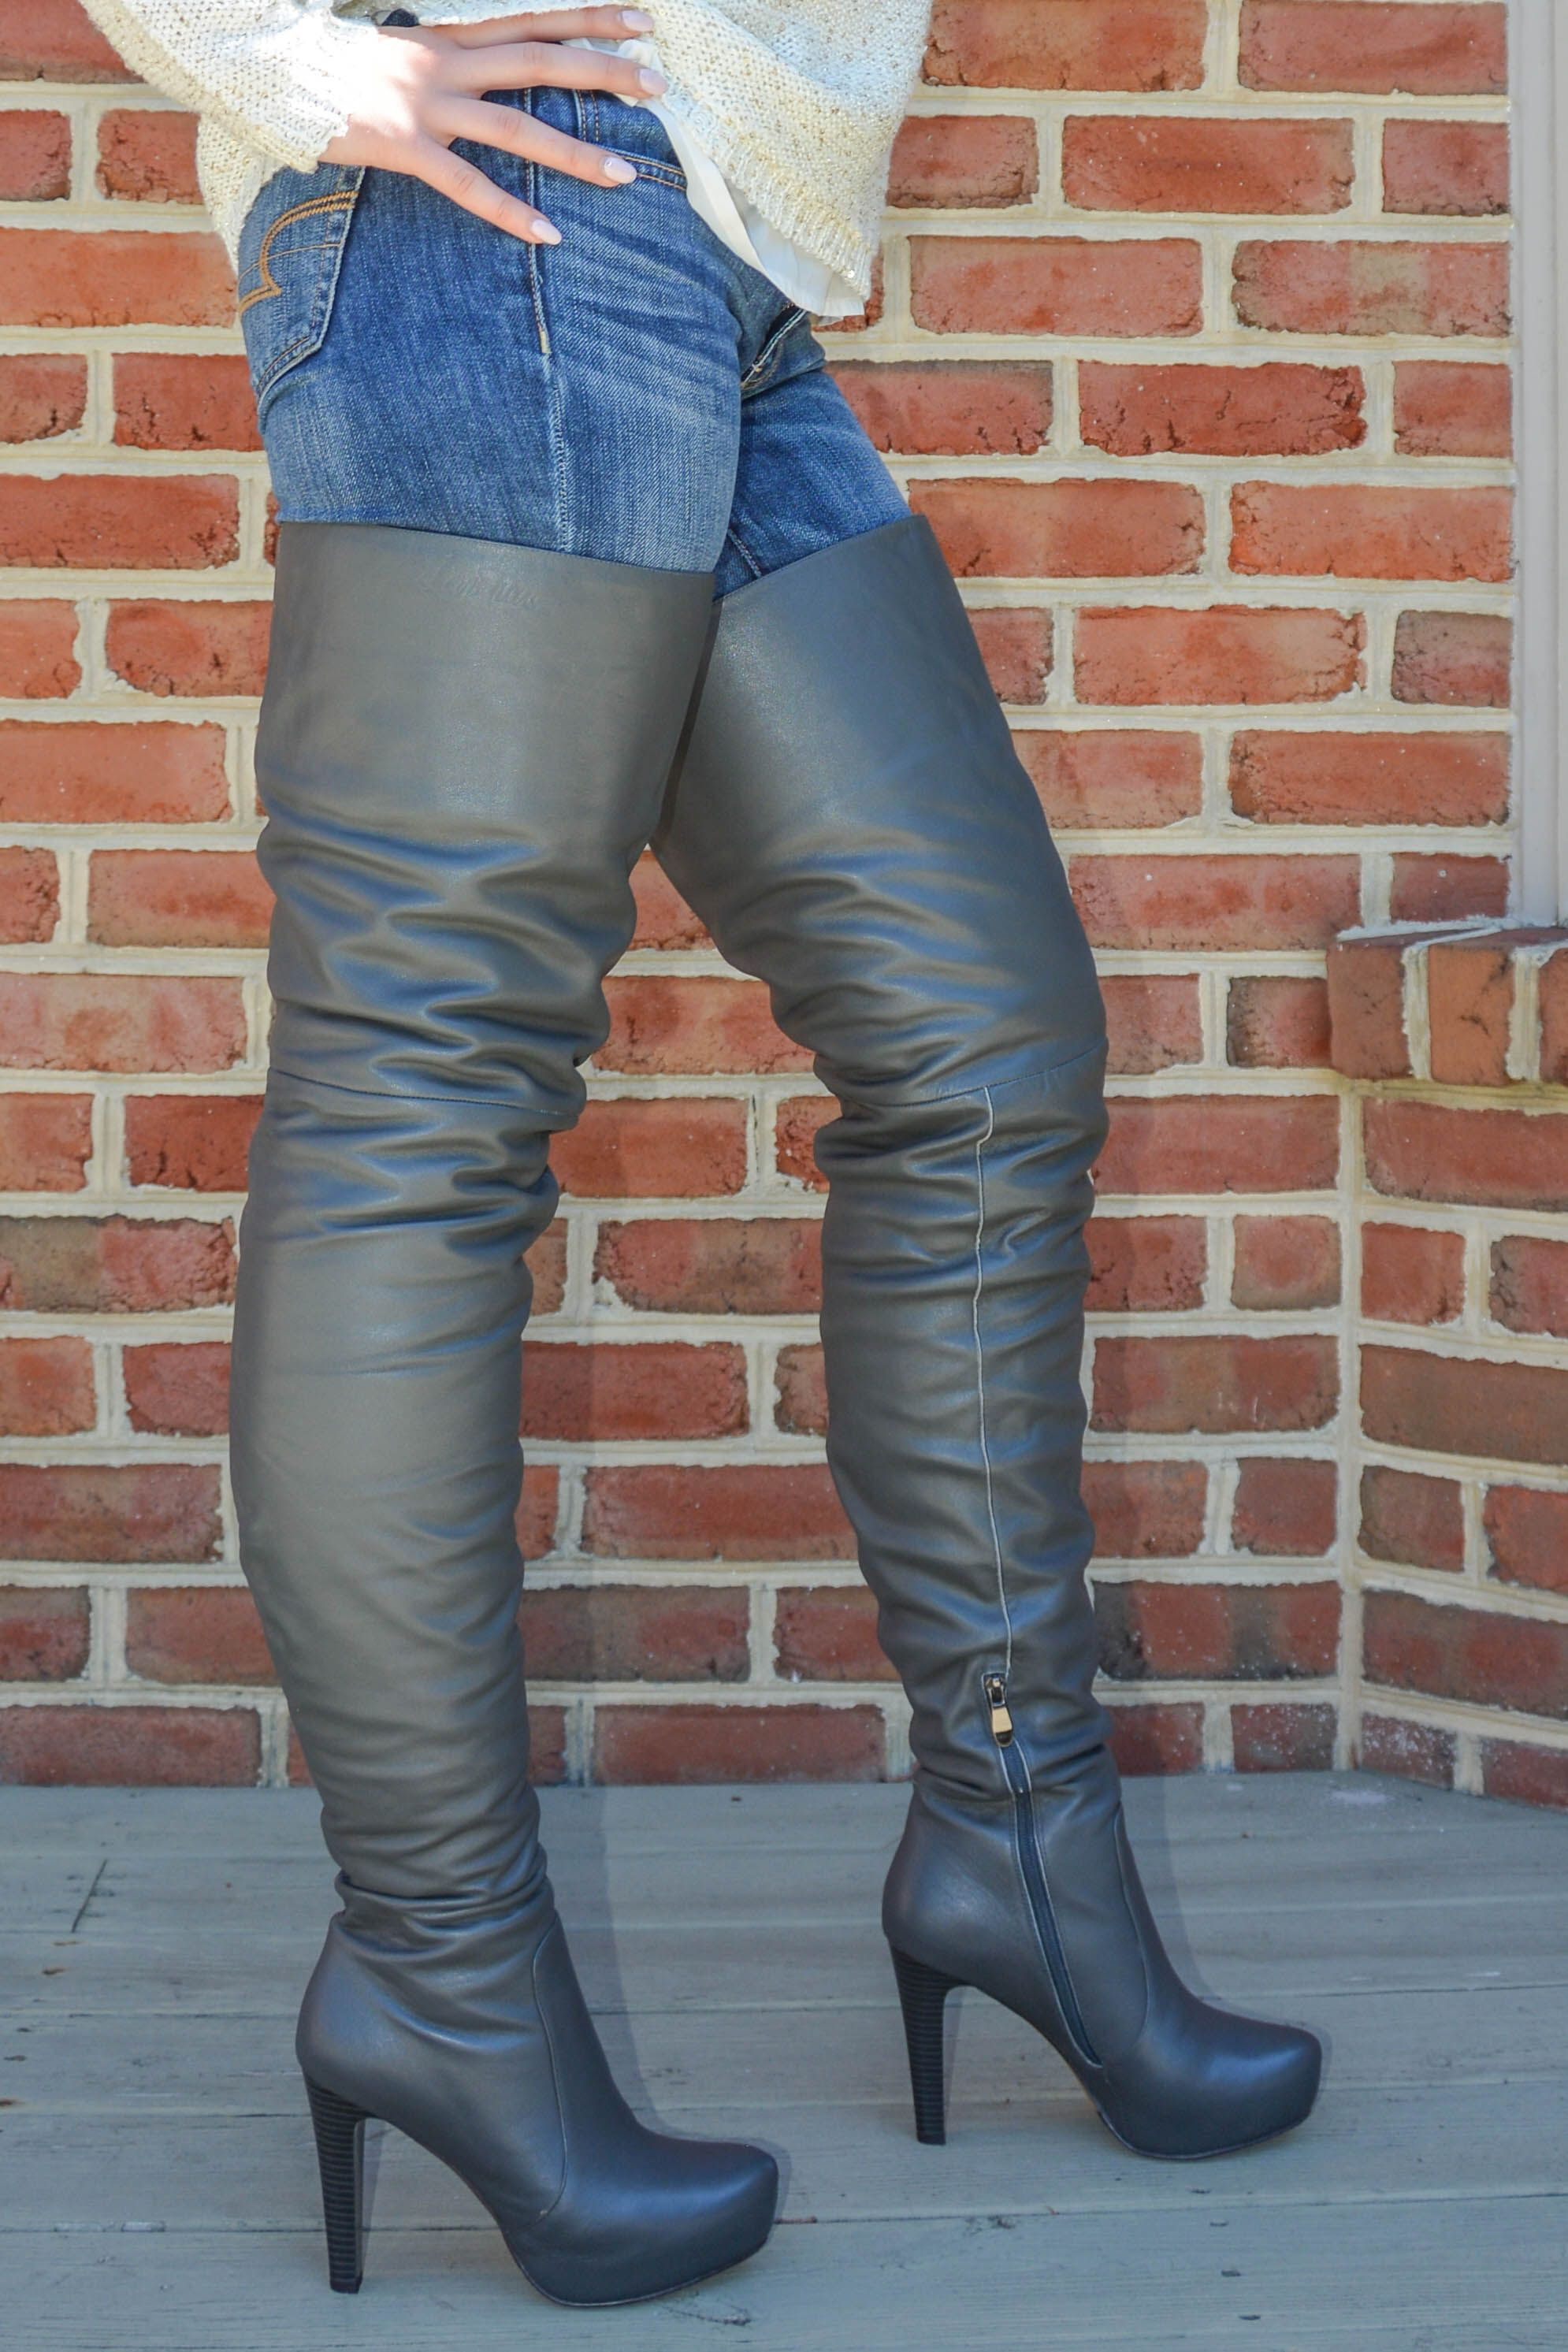 Sage Green Leather 2 0 Platform High Rize Boots Boots